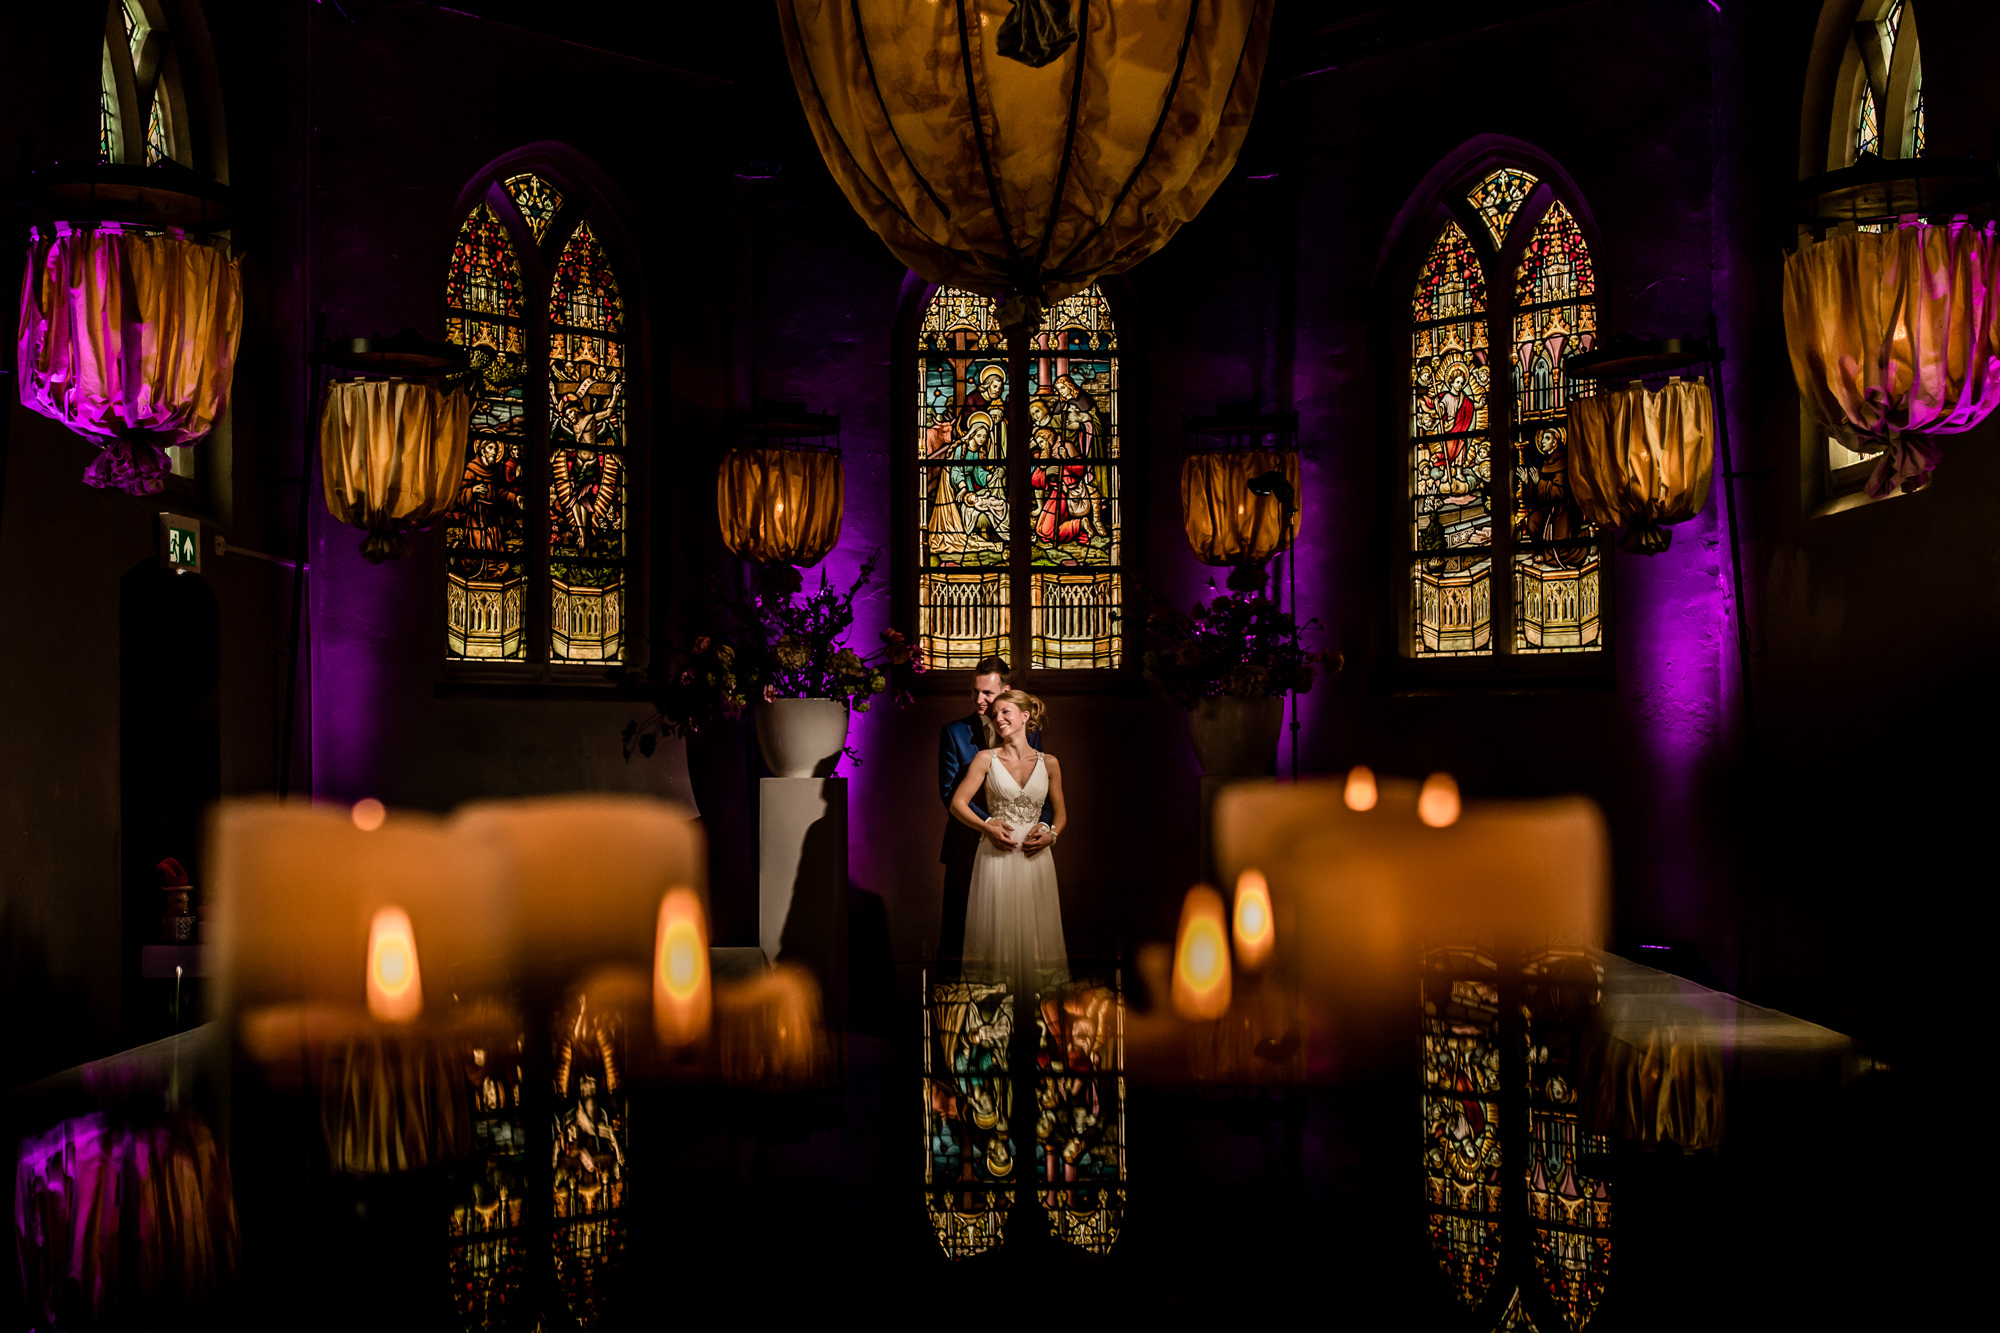 Couple in candlelit stained glass church - photo by Eppel Photography - Weert, Netherlands